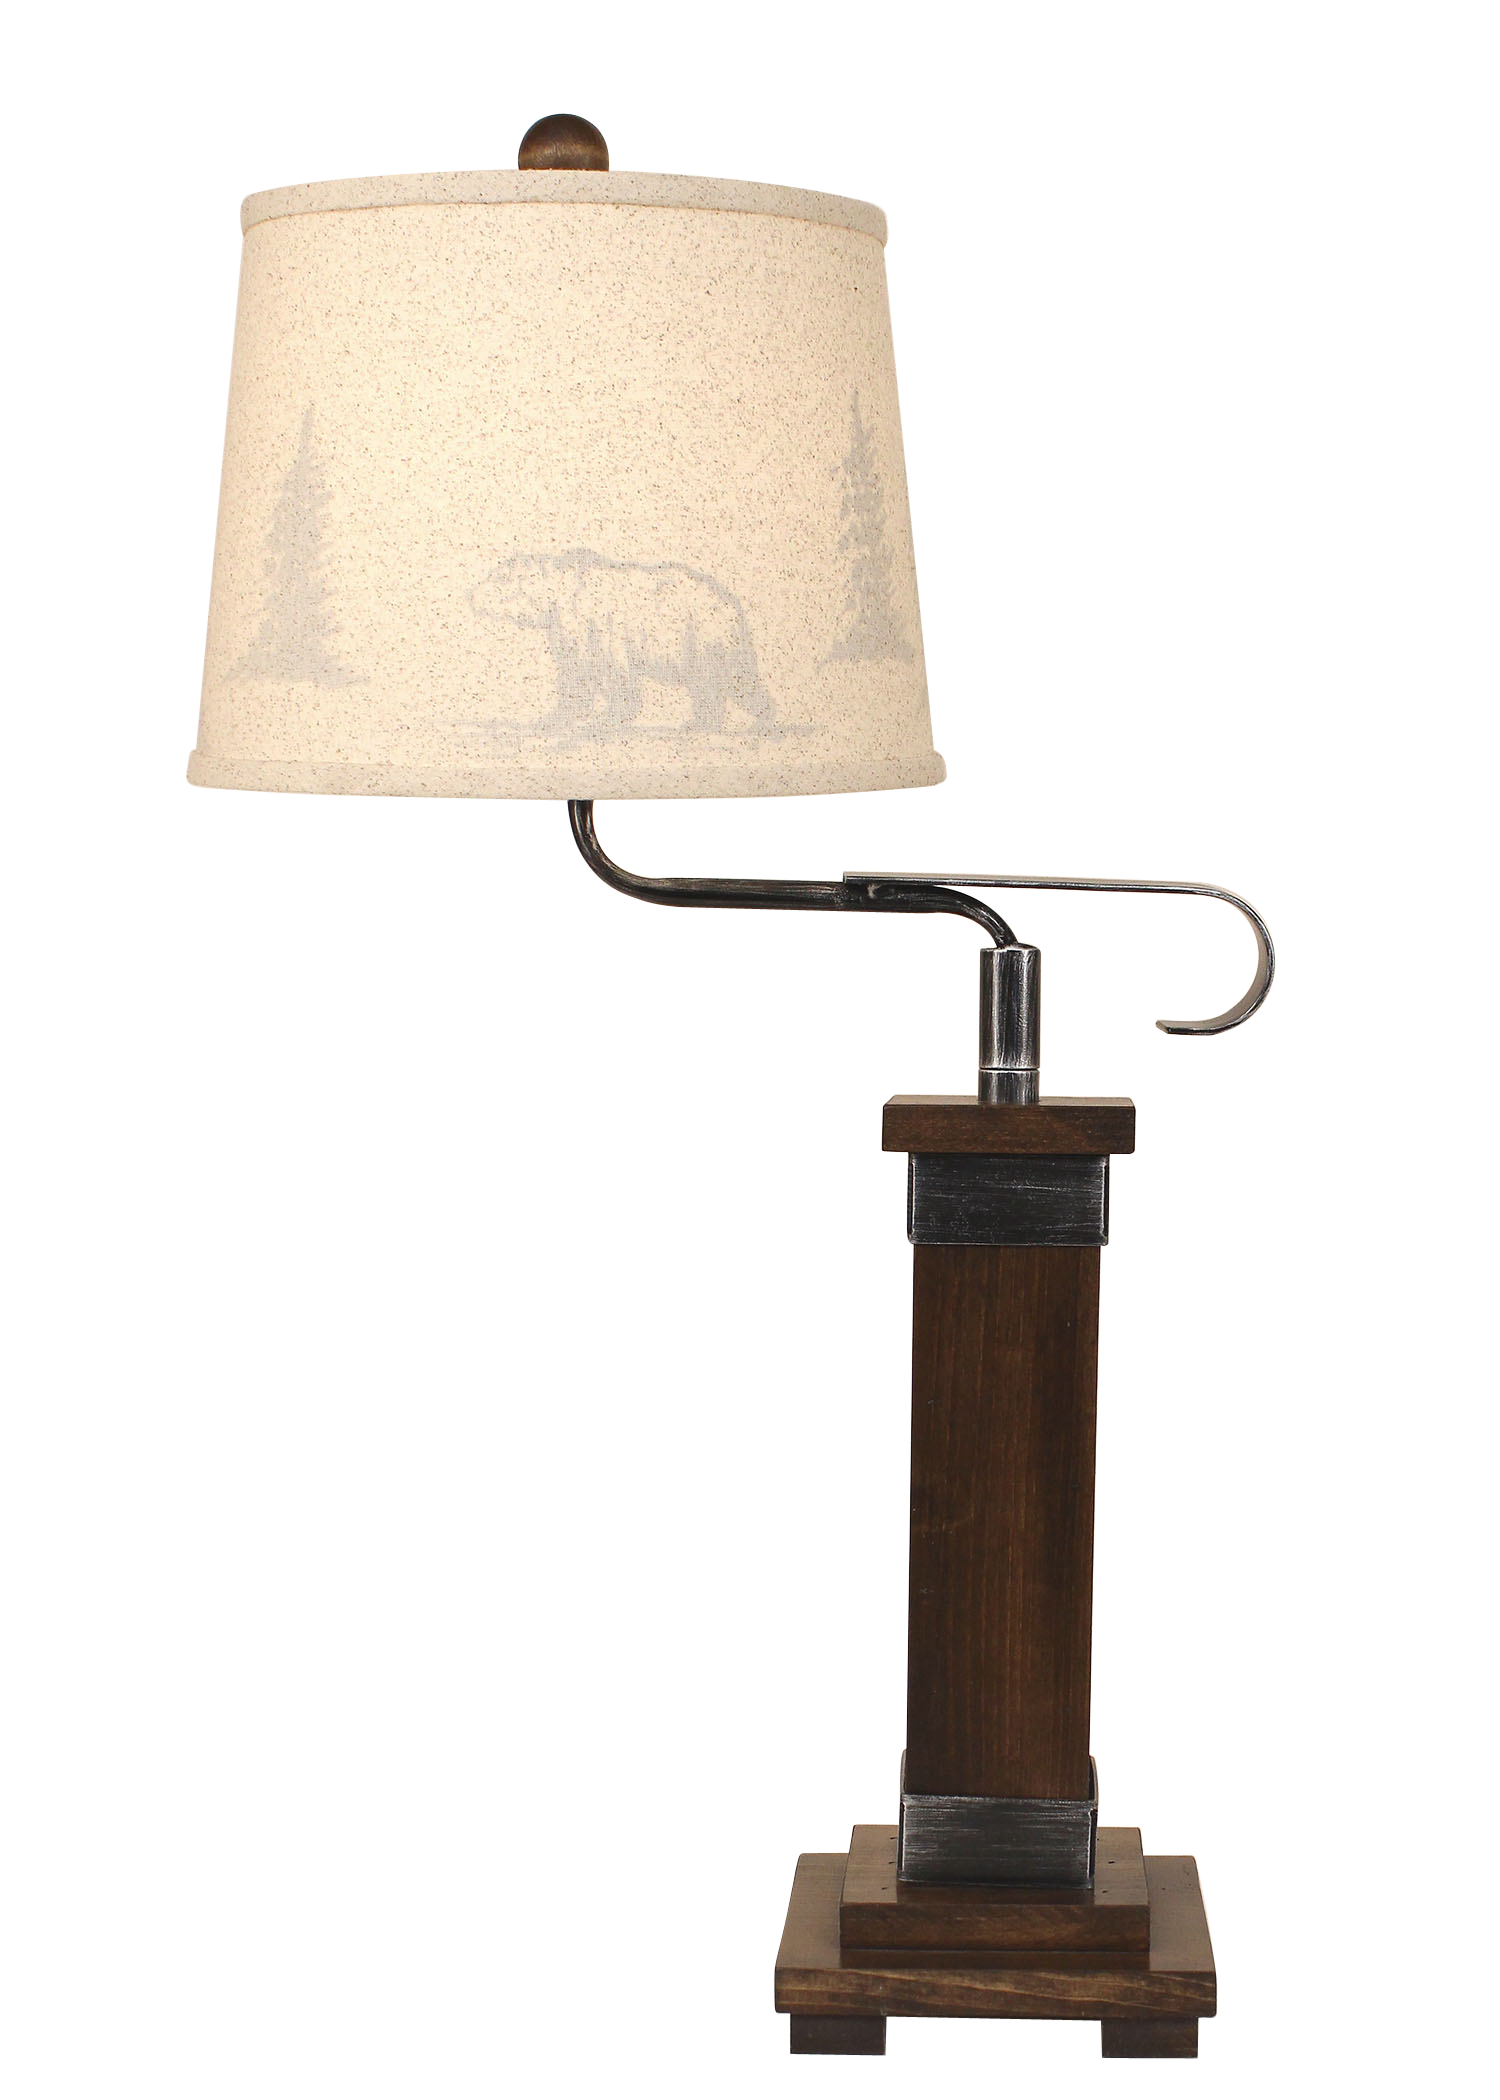 Dark Stain/Steel Mission Style Swing Arm Table Lamp- Bear and Tree Silhouette Shade - Coast Lamp Shop